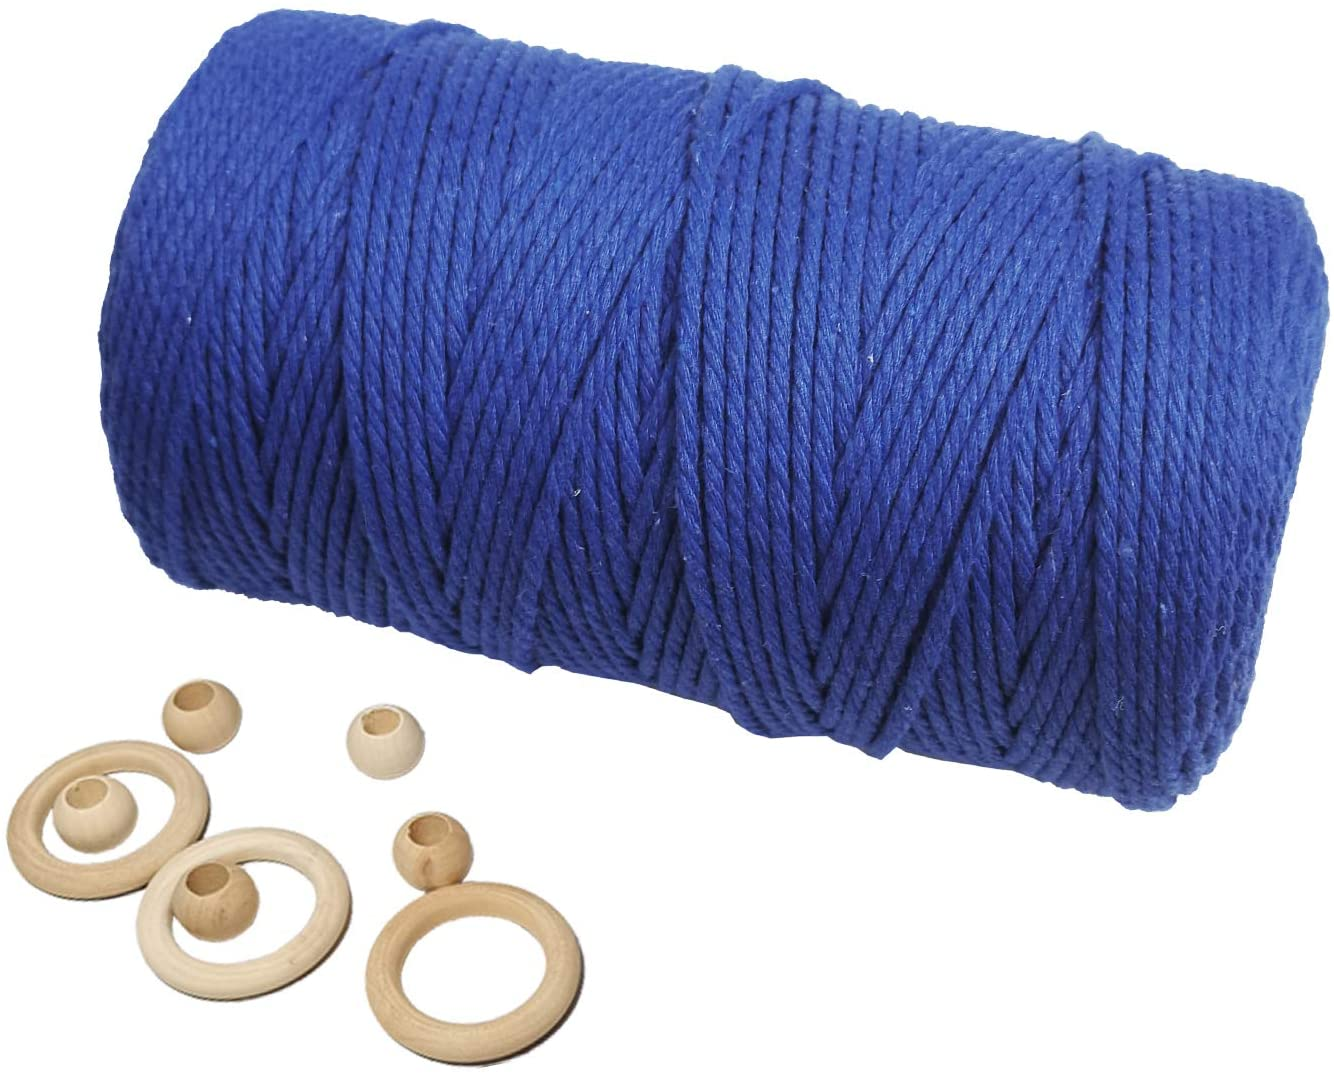 Macrame Cord 3mm x 200m Deep Blue 1 Pack, Colored Macrame Cotton Cord for Macrame Supplies, 3mm Cotton Macrame Cord 4 Strands Twist for Handmade Wall Hanging Plant Hanger Boho Craft Knitting